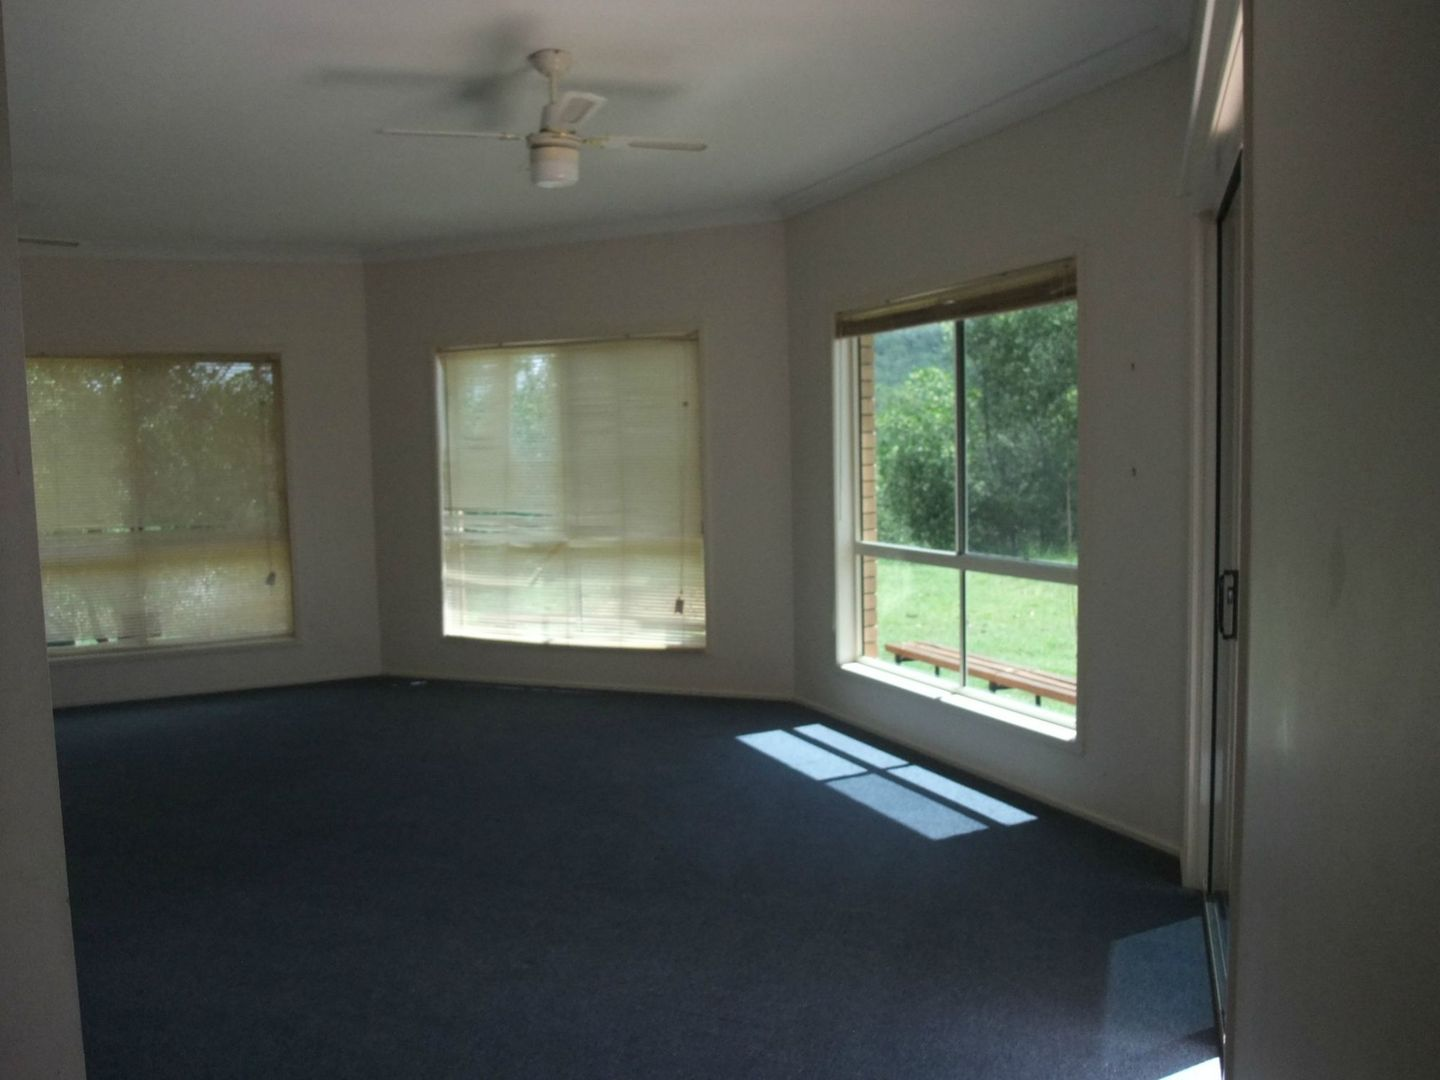 819 Boonah Rathdowney Road, Wallaces Creek QLD 4310, Image 2